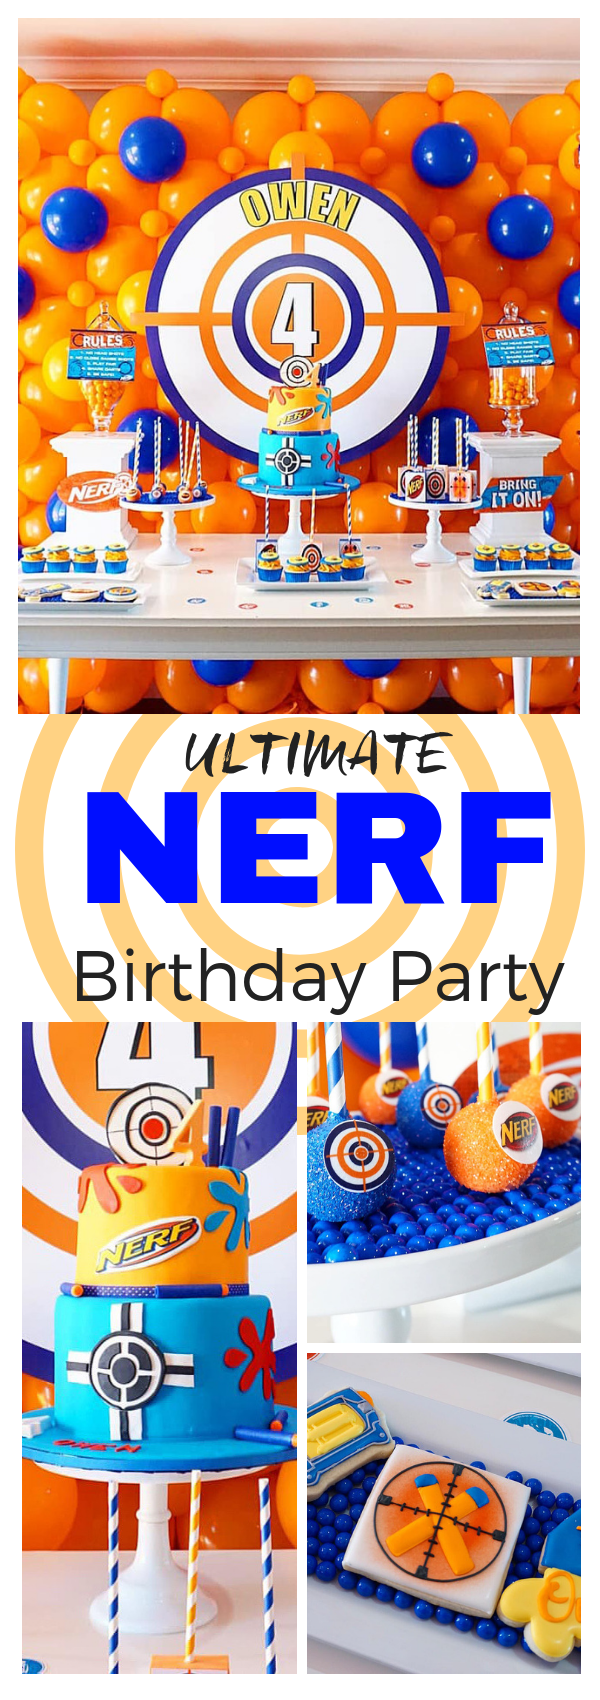 UltimateNerfBirthdayParty